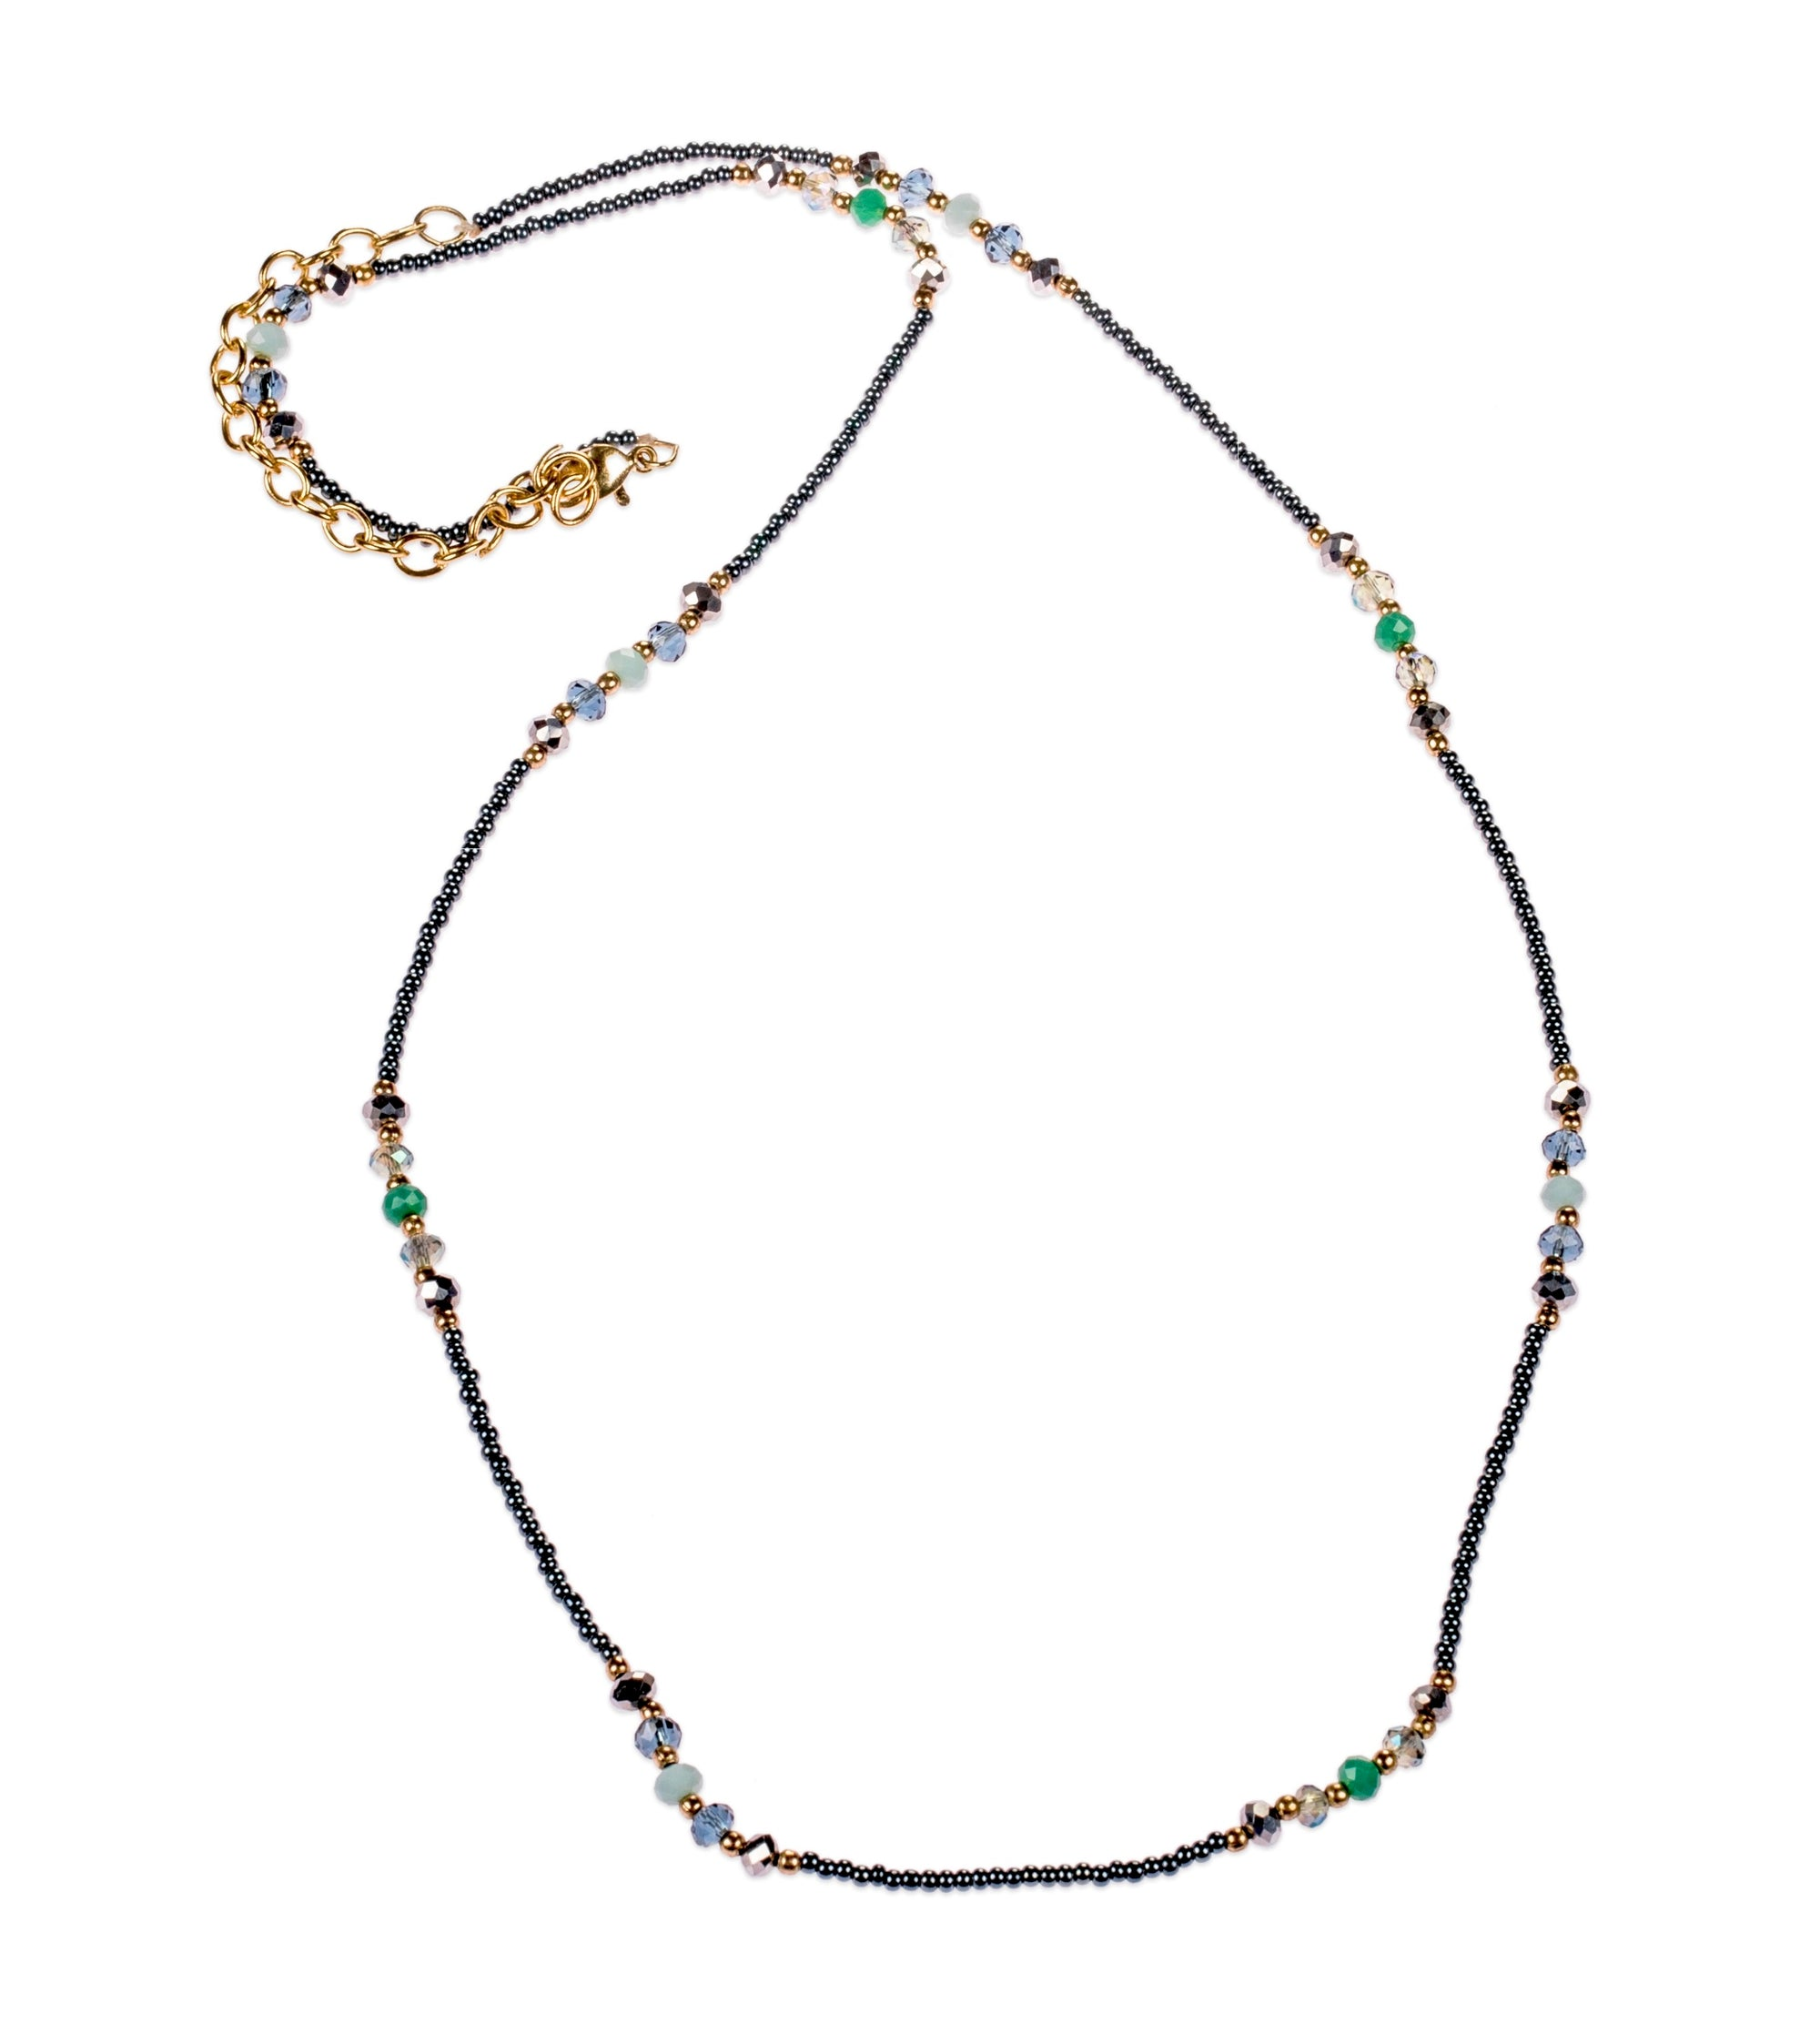 Esha Necklace | Accessories | Daughters of The Ganges | [product_tag] - Fair Bazaar Ethical Living